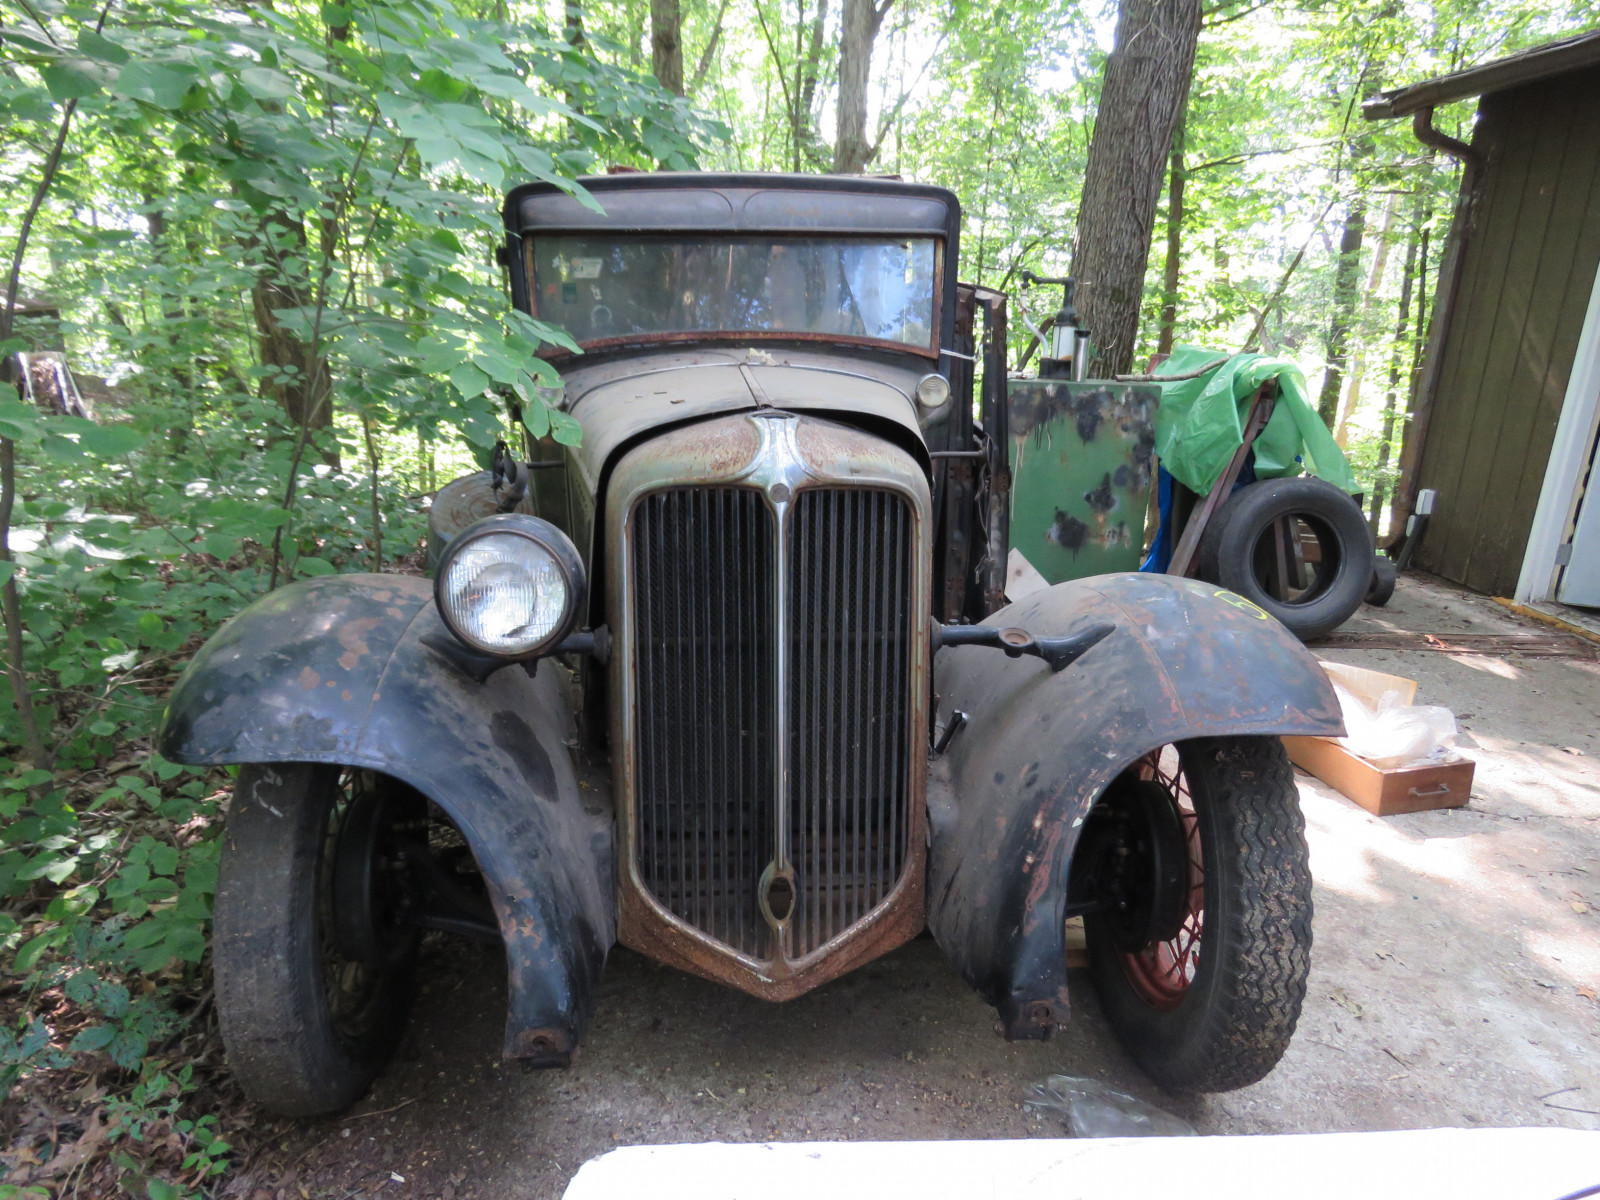 1931 Chrysler CM6 4dr Sedan Project - Image 2